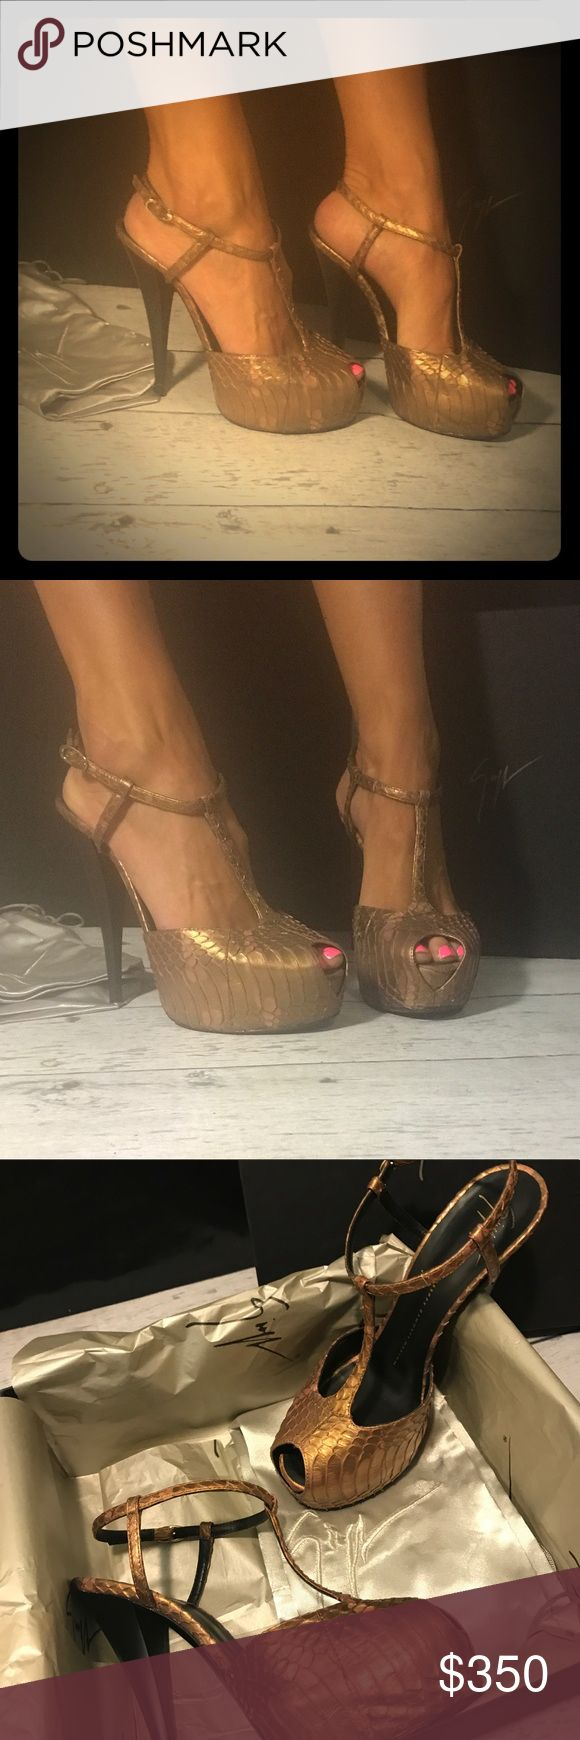 Giuseppe Zanotti t strap platforms 39 NEVER WORN! Giuseppe Zanotti snakeskin t strap platforms size 39 fits women US size 8.5-9 NEVER WORN! Box, tissue paper and dust bag all included! Originally retail price 650 Giuseppe Zanotti Shoes Platforms